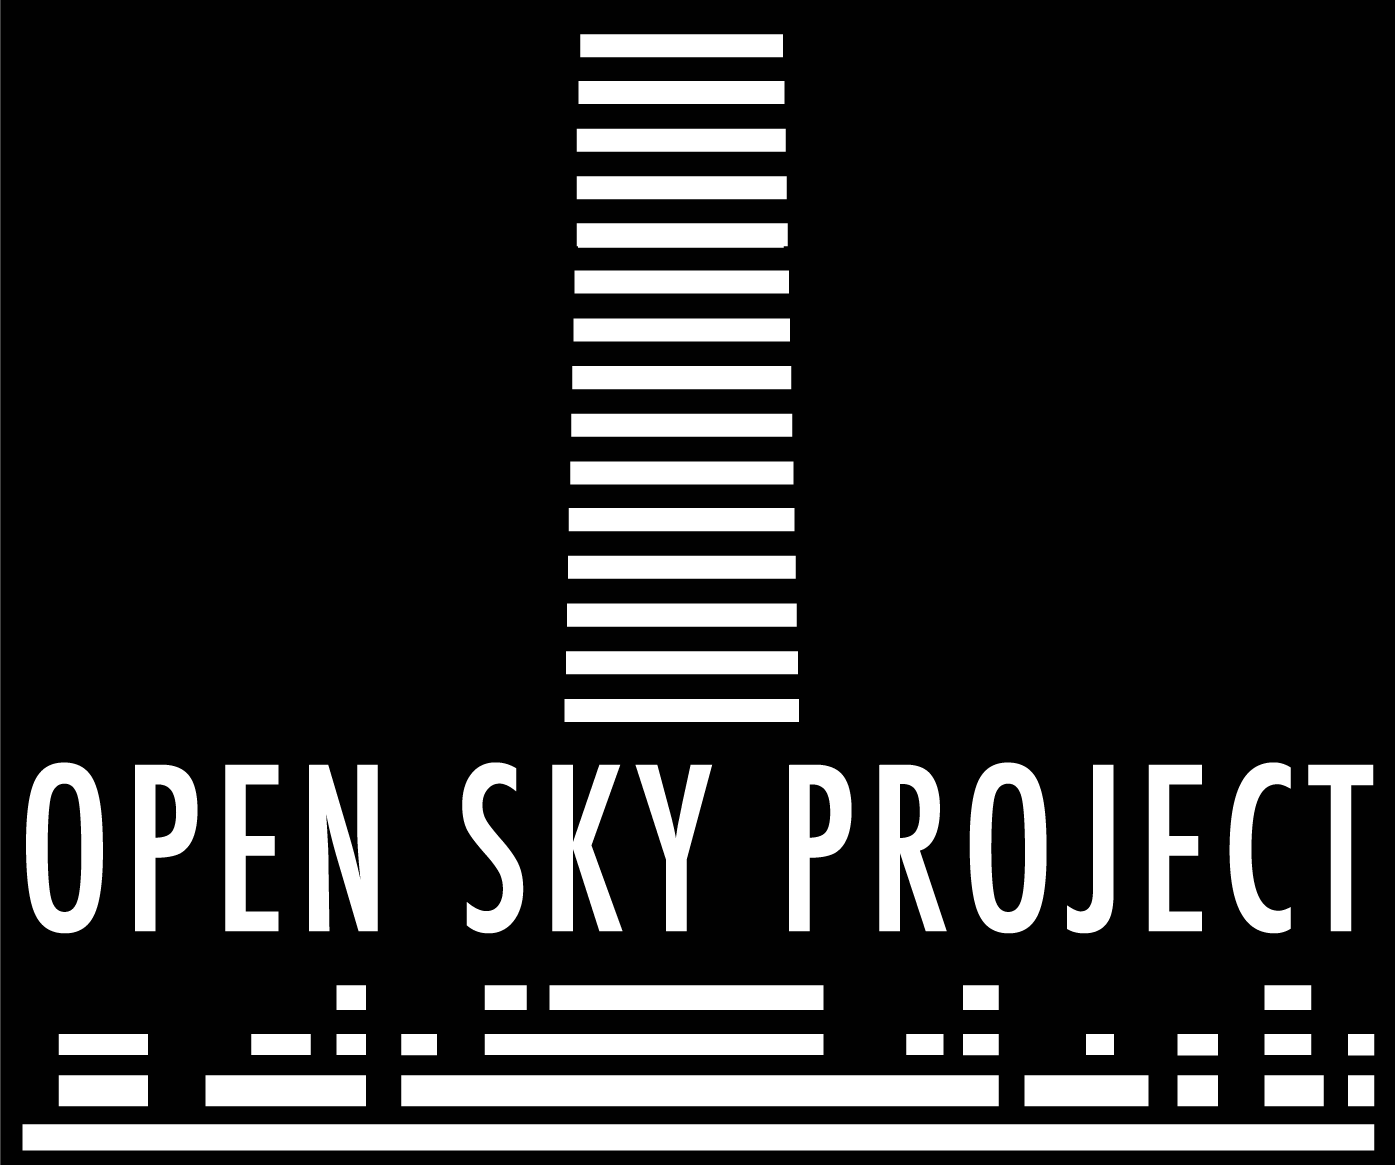 Open Sky Project Background